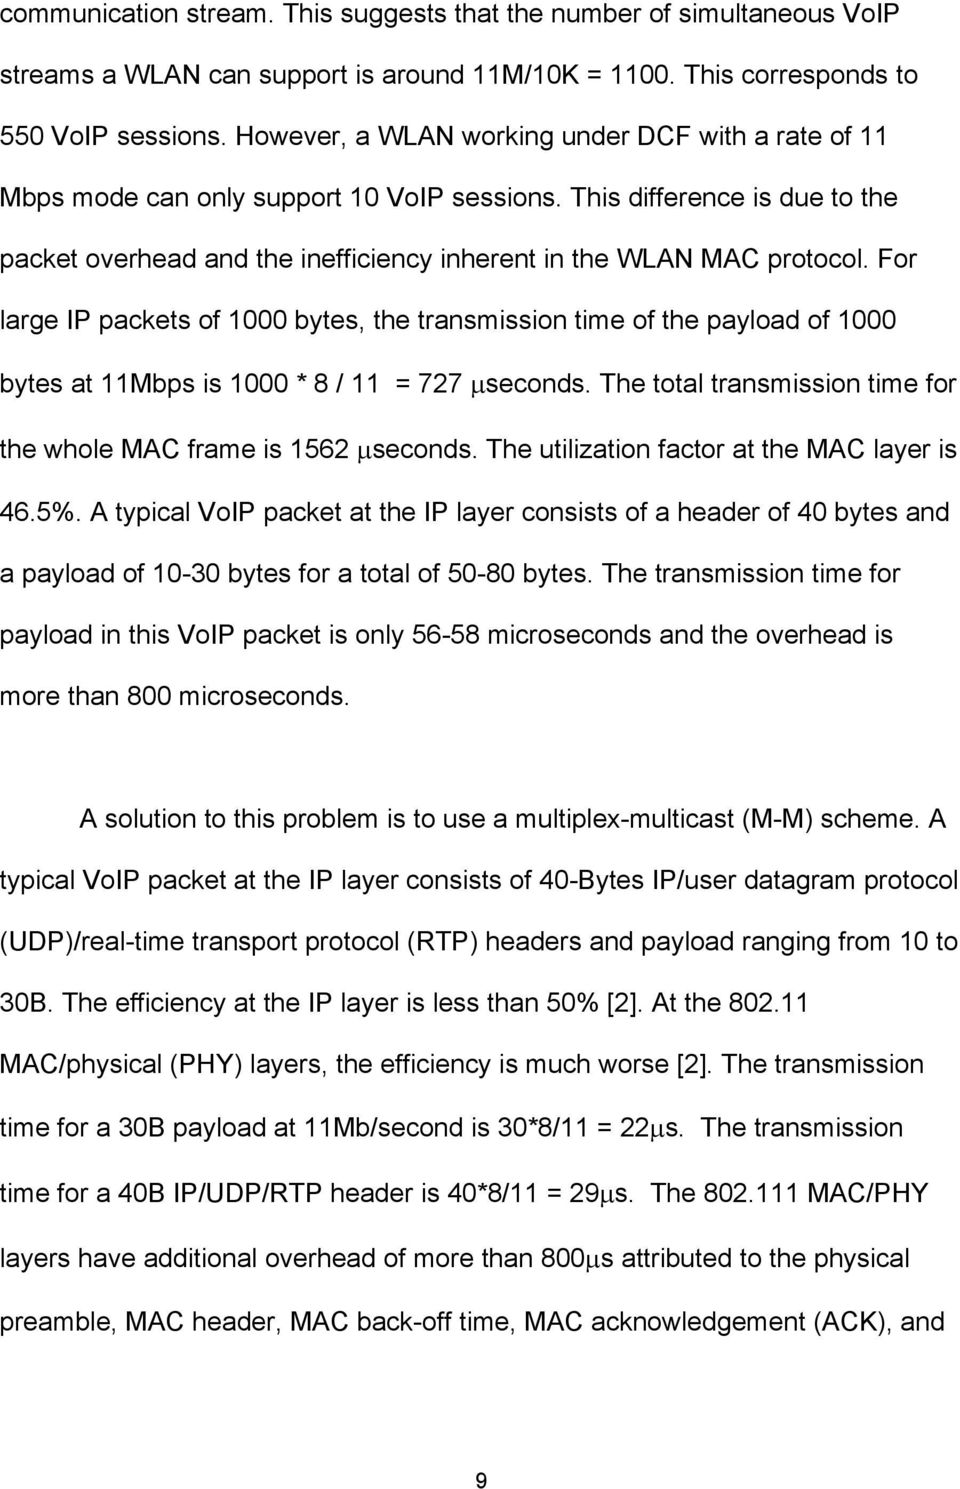 For large IP packets of 1000 bytes, the transmission time of the payload of 1000 bytes at 11Mbps is 1000 * 8 / 11 = 727 seconds. The total transmission time for the whole MAC frame is 1562 seconds.